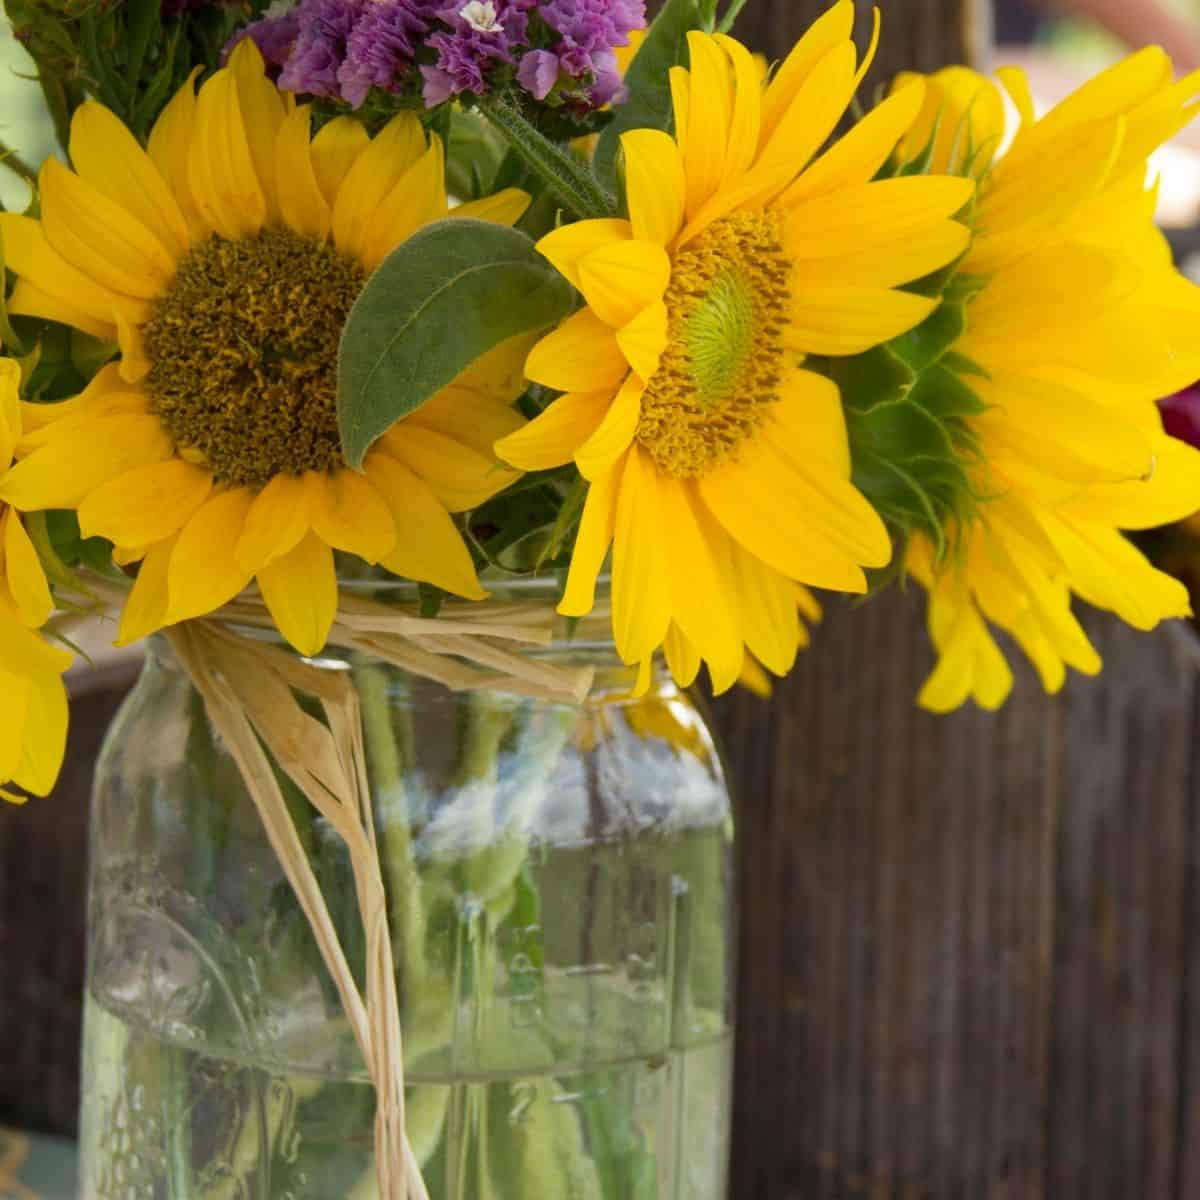 mason jar tied in rope with sunflowers